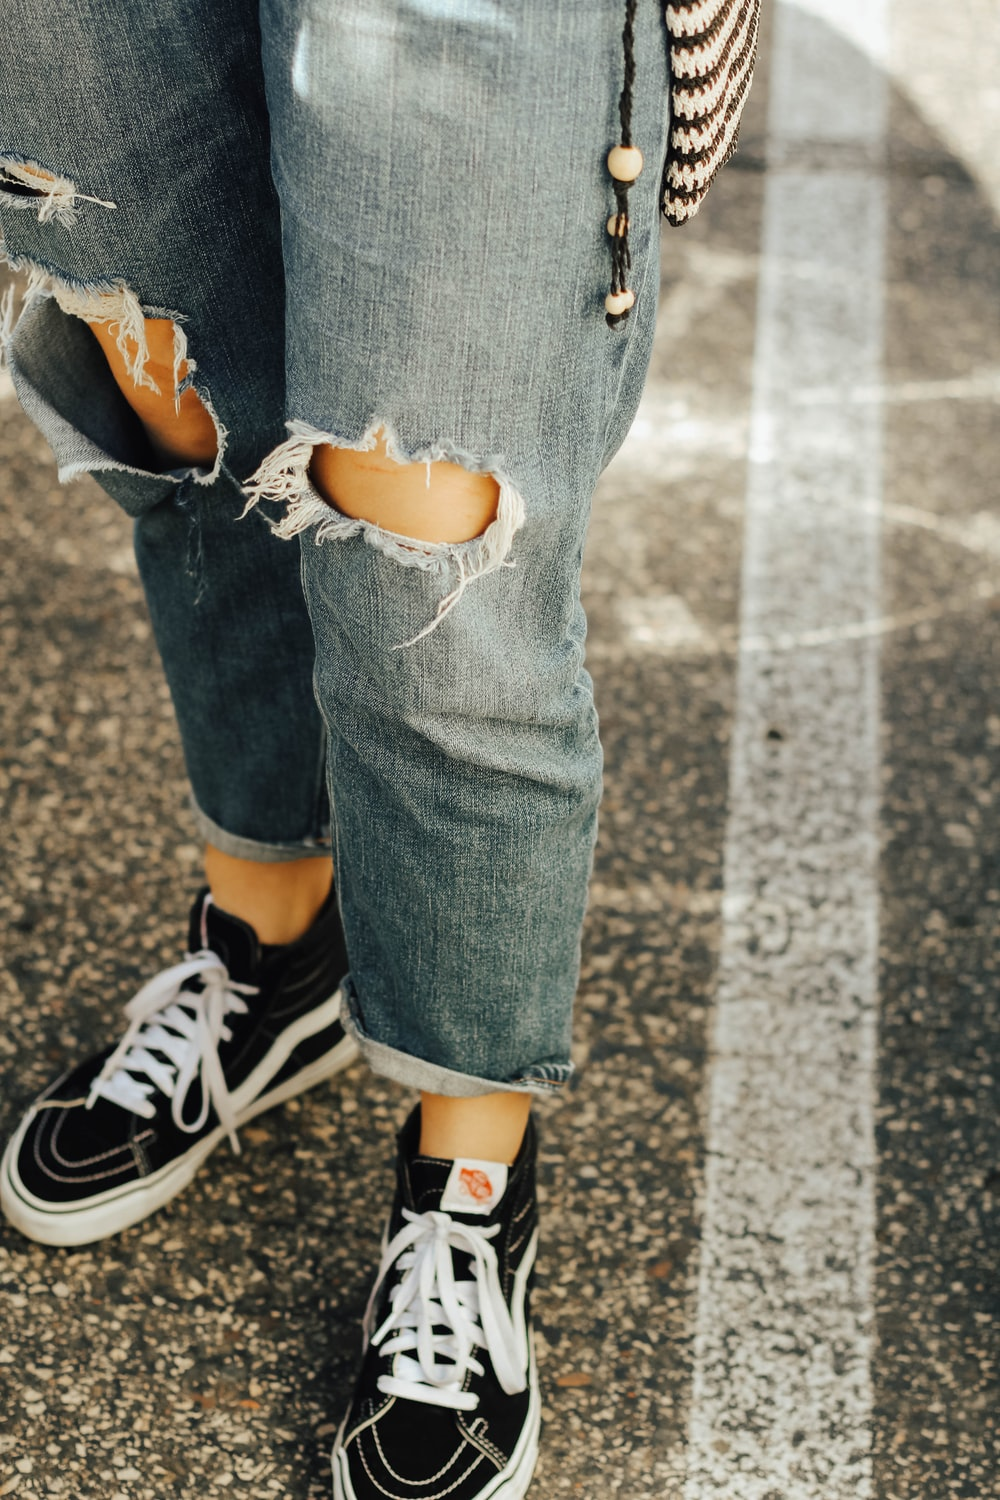 close-up photo of blue denim jeans and pair of black Vans sneakers